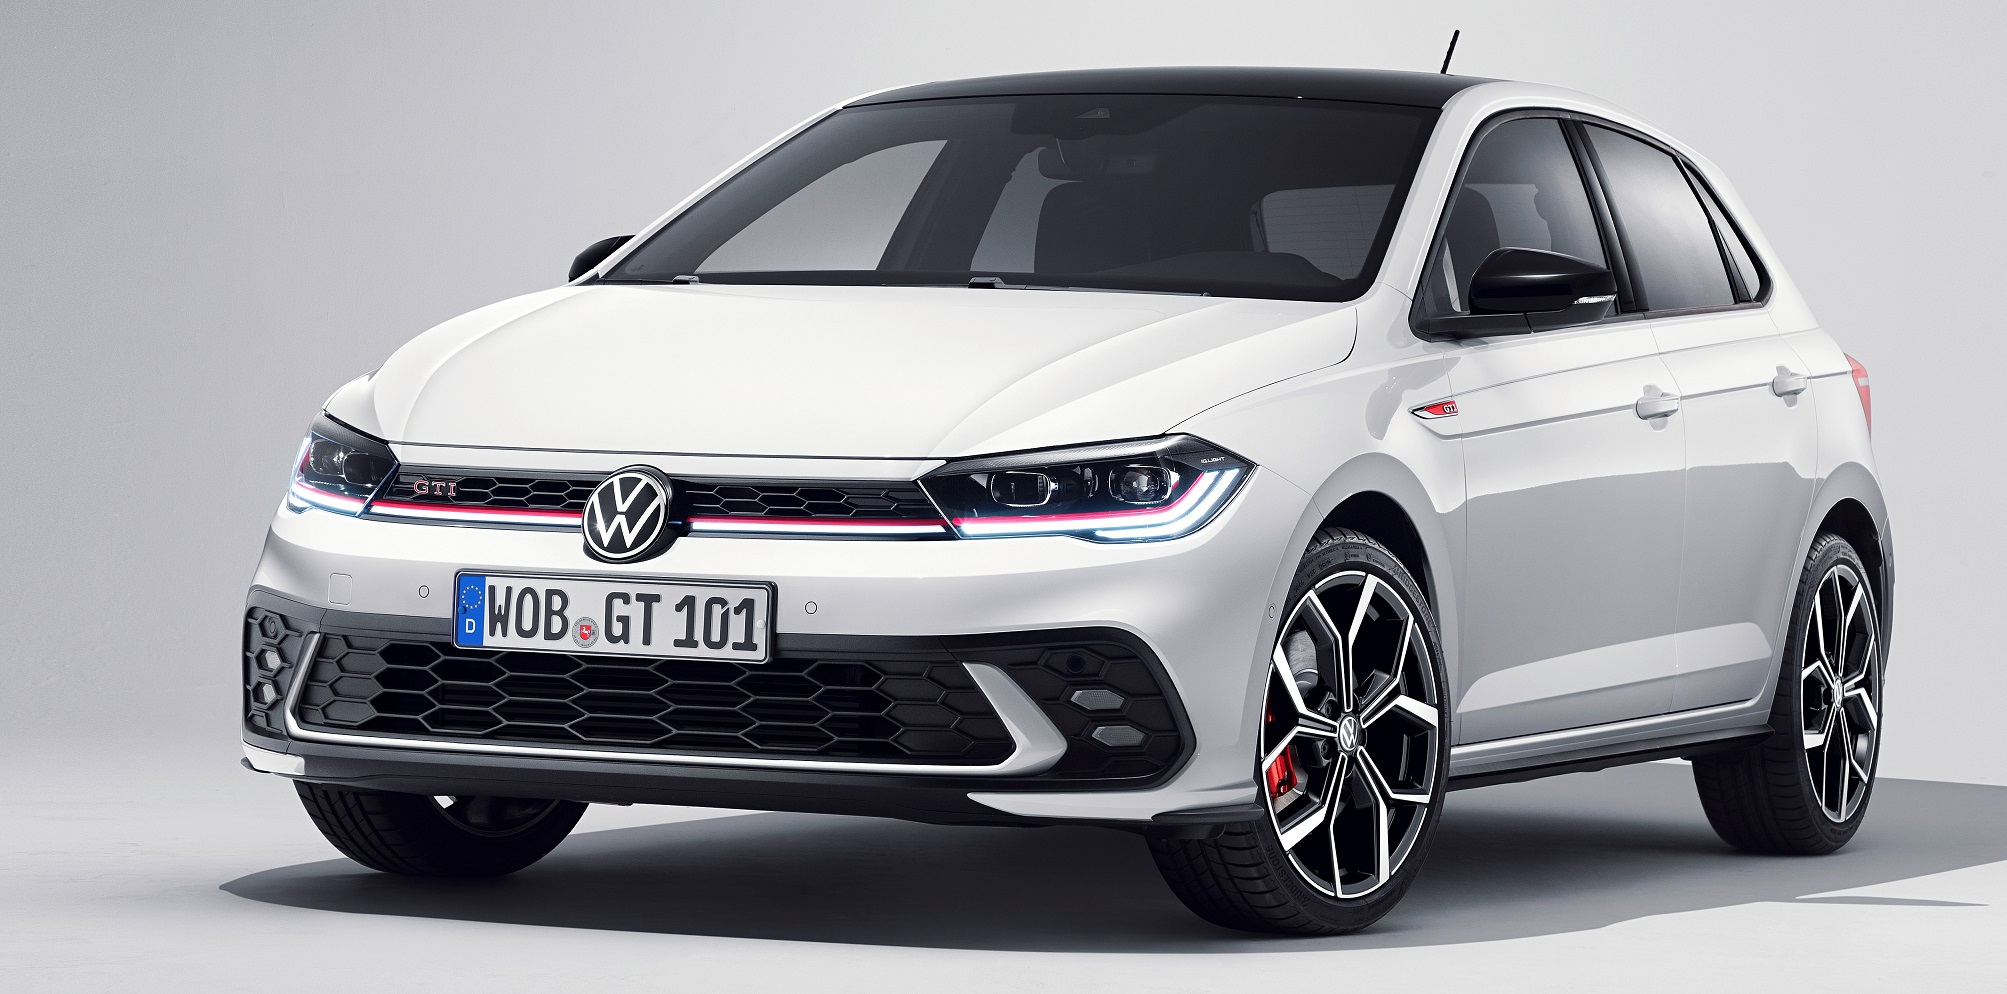 New Volkswagen Polo GTI packs a punch